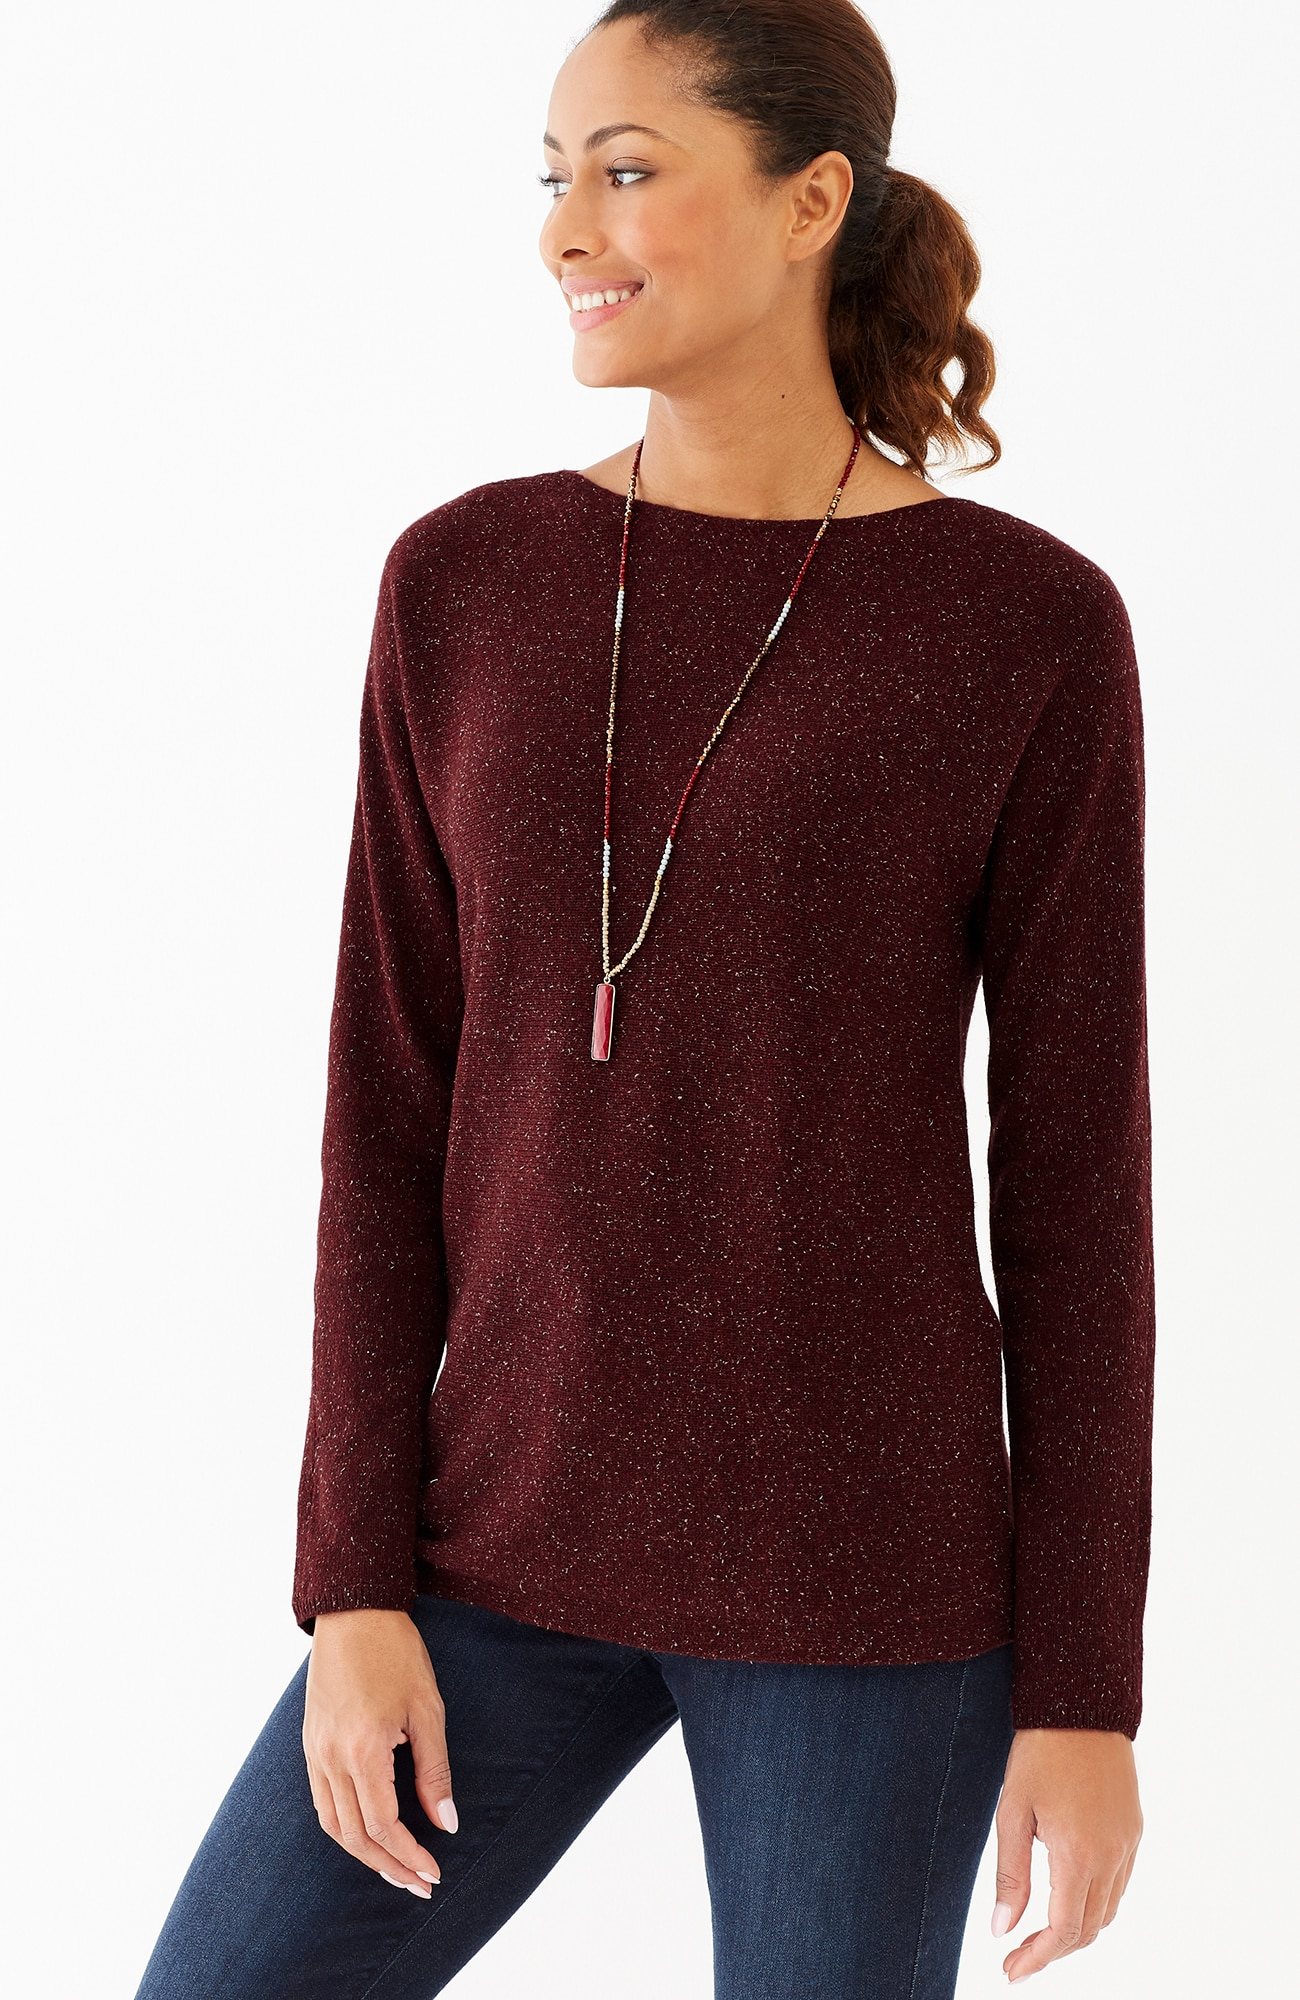 Callie boat-neck sweater